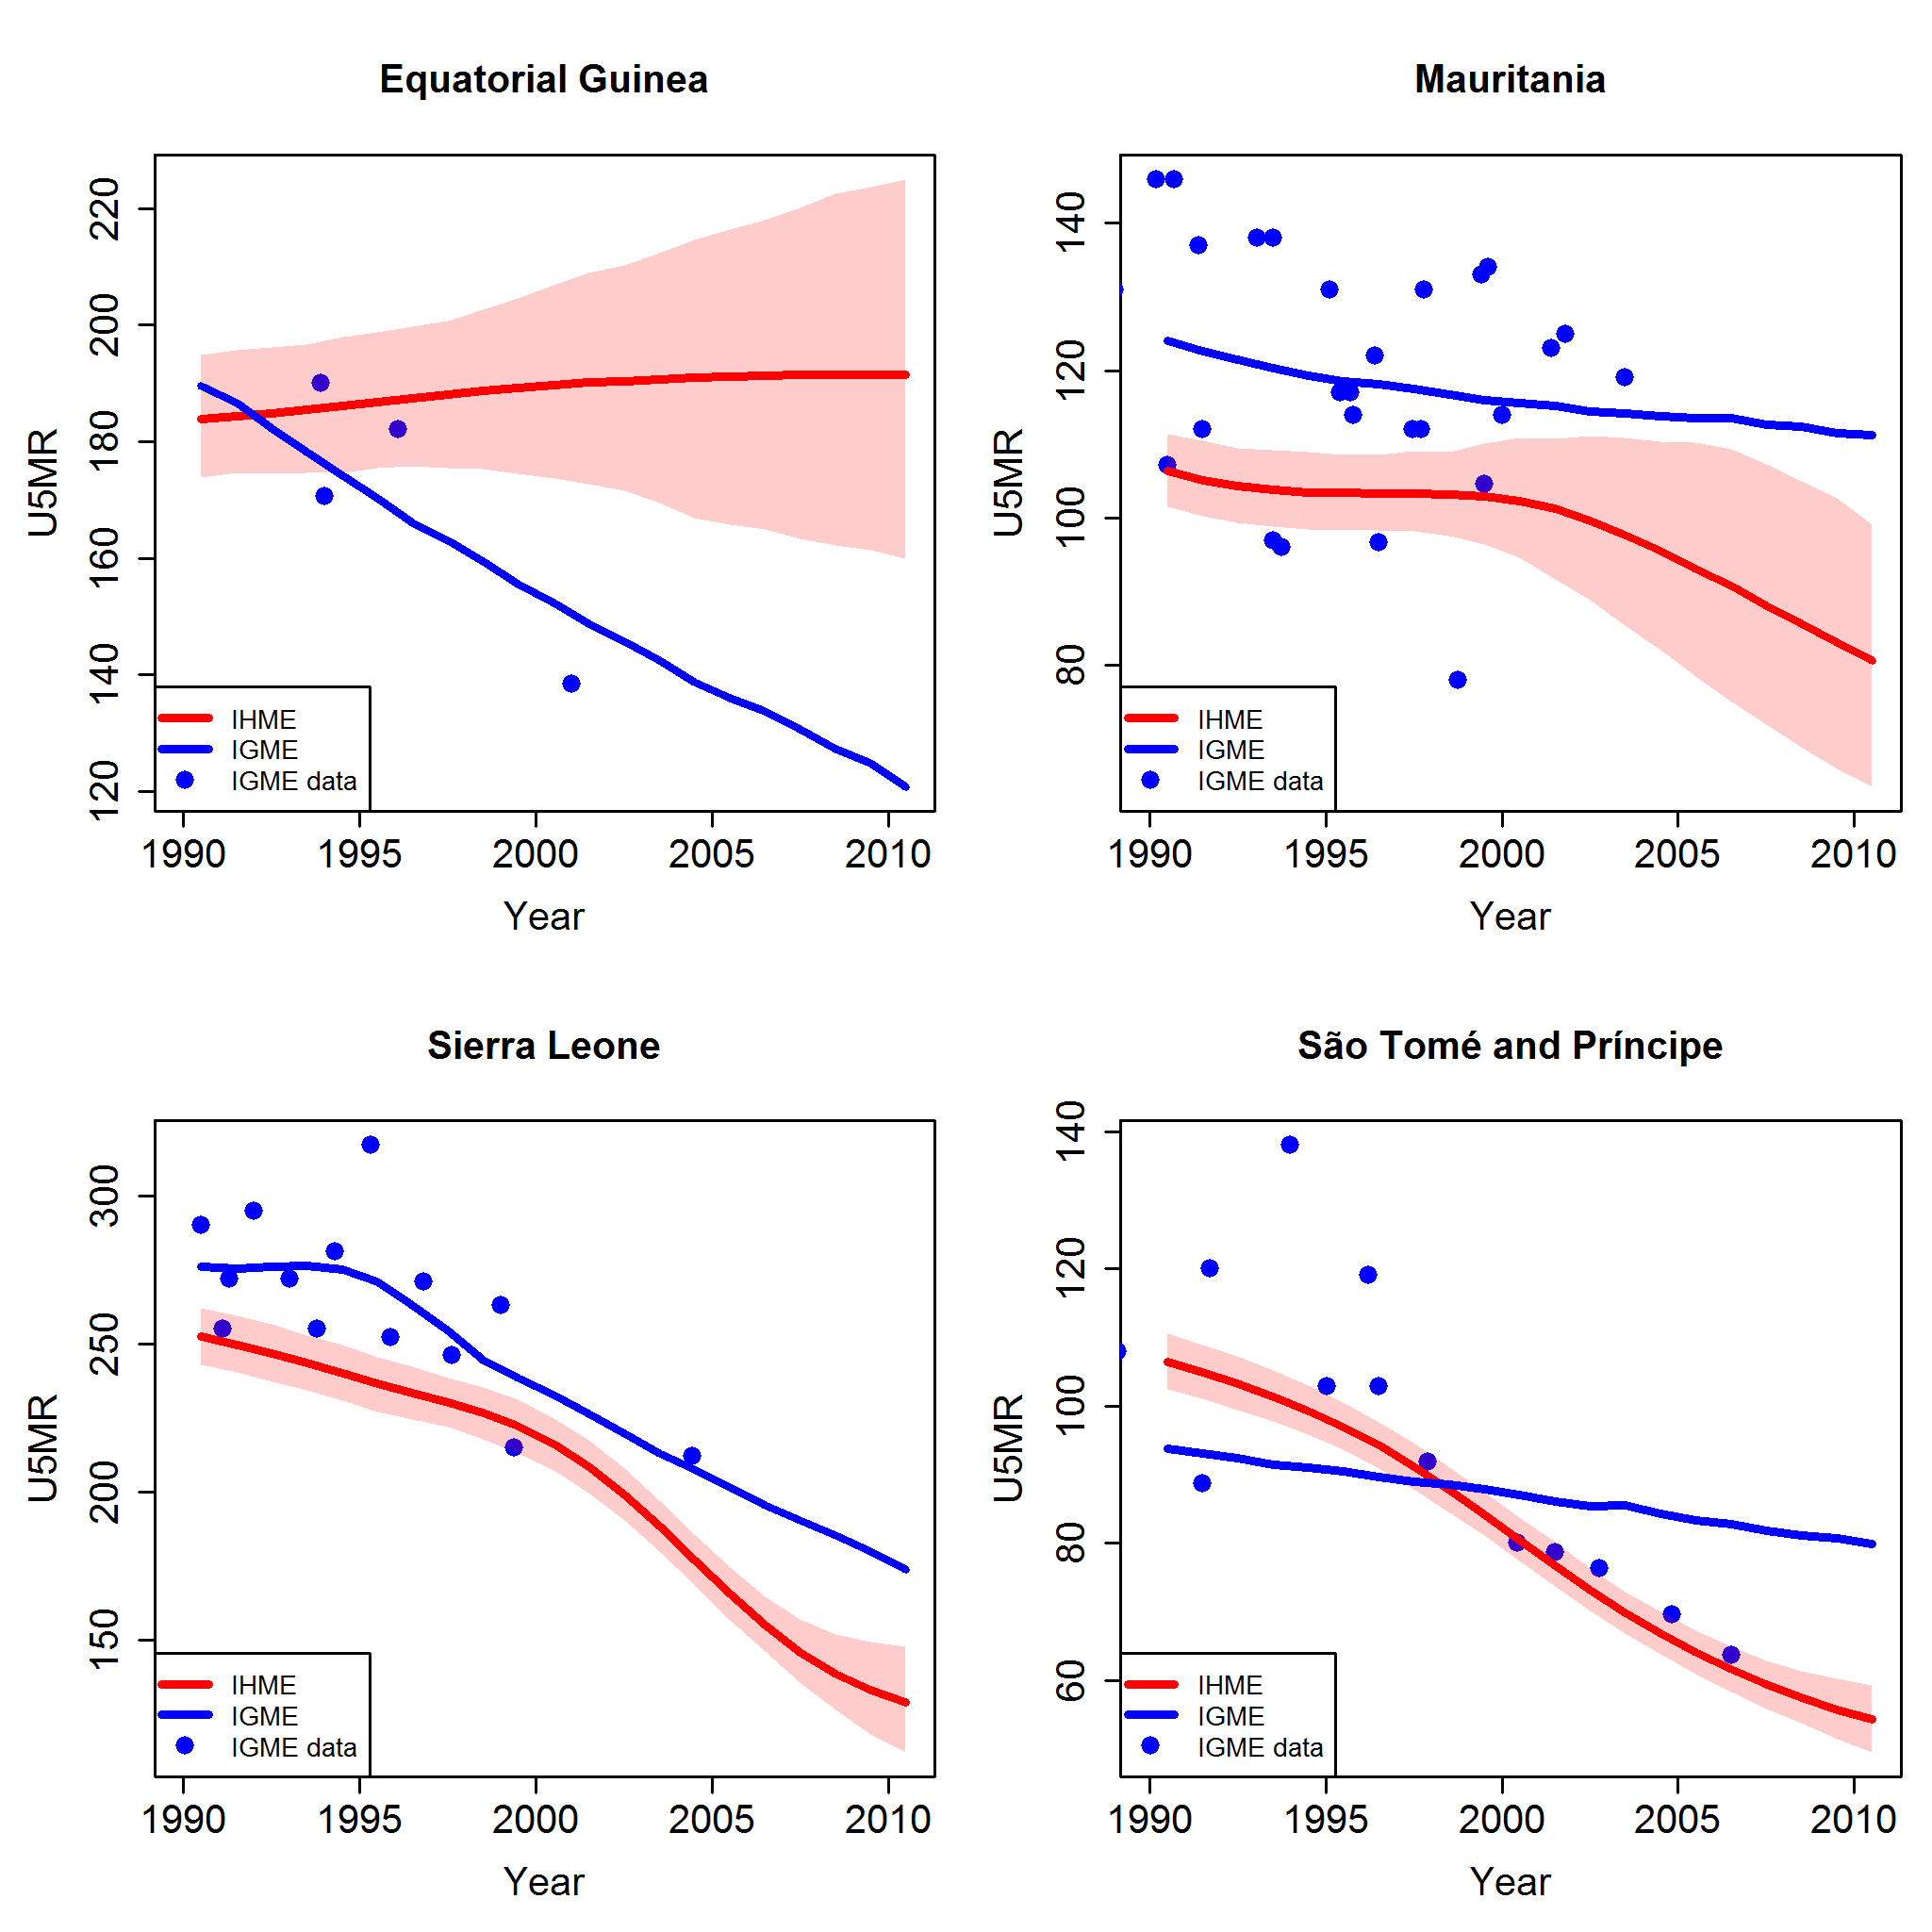 Comparison of U5MR estimates from 1990 to 2010 for examples of countries where different data series were included and excluded by the UN IGME and the IHME.